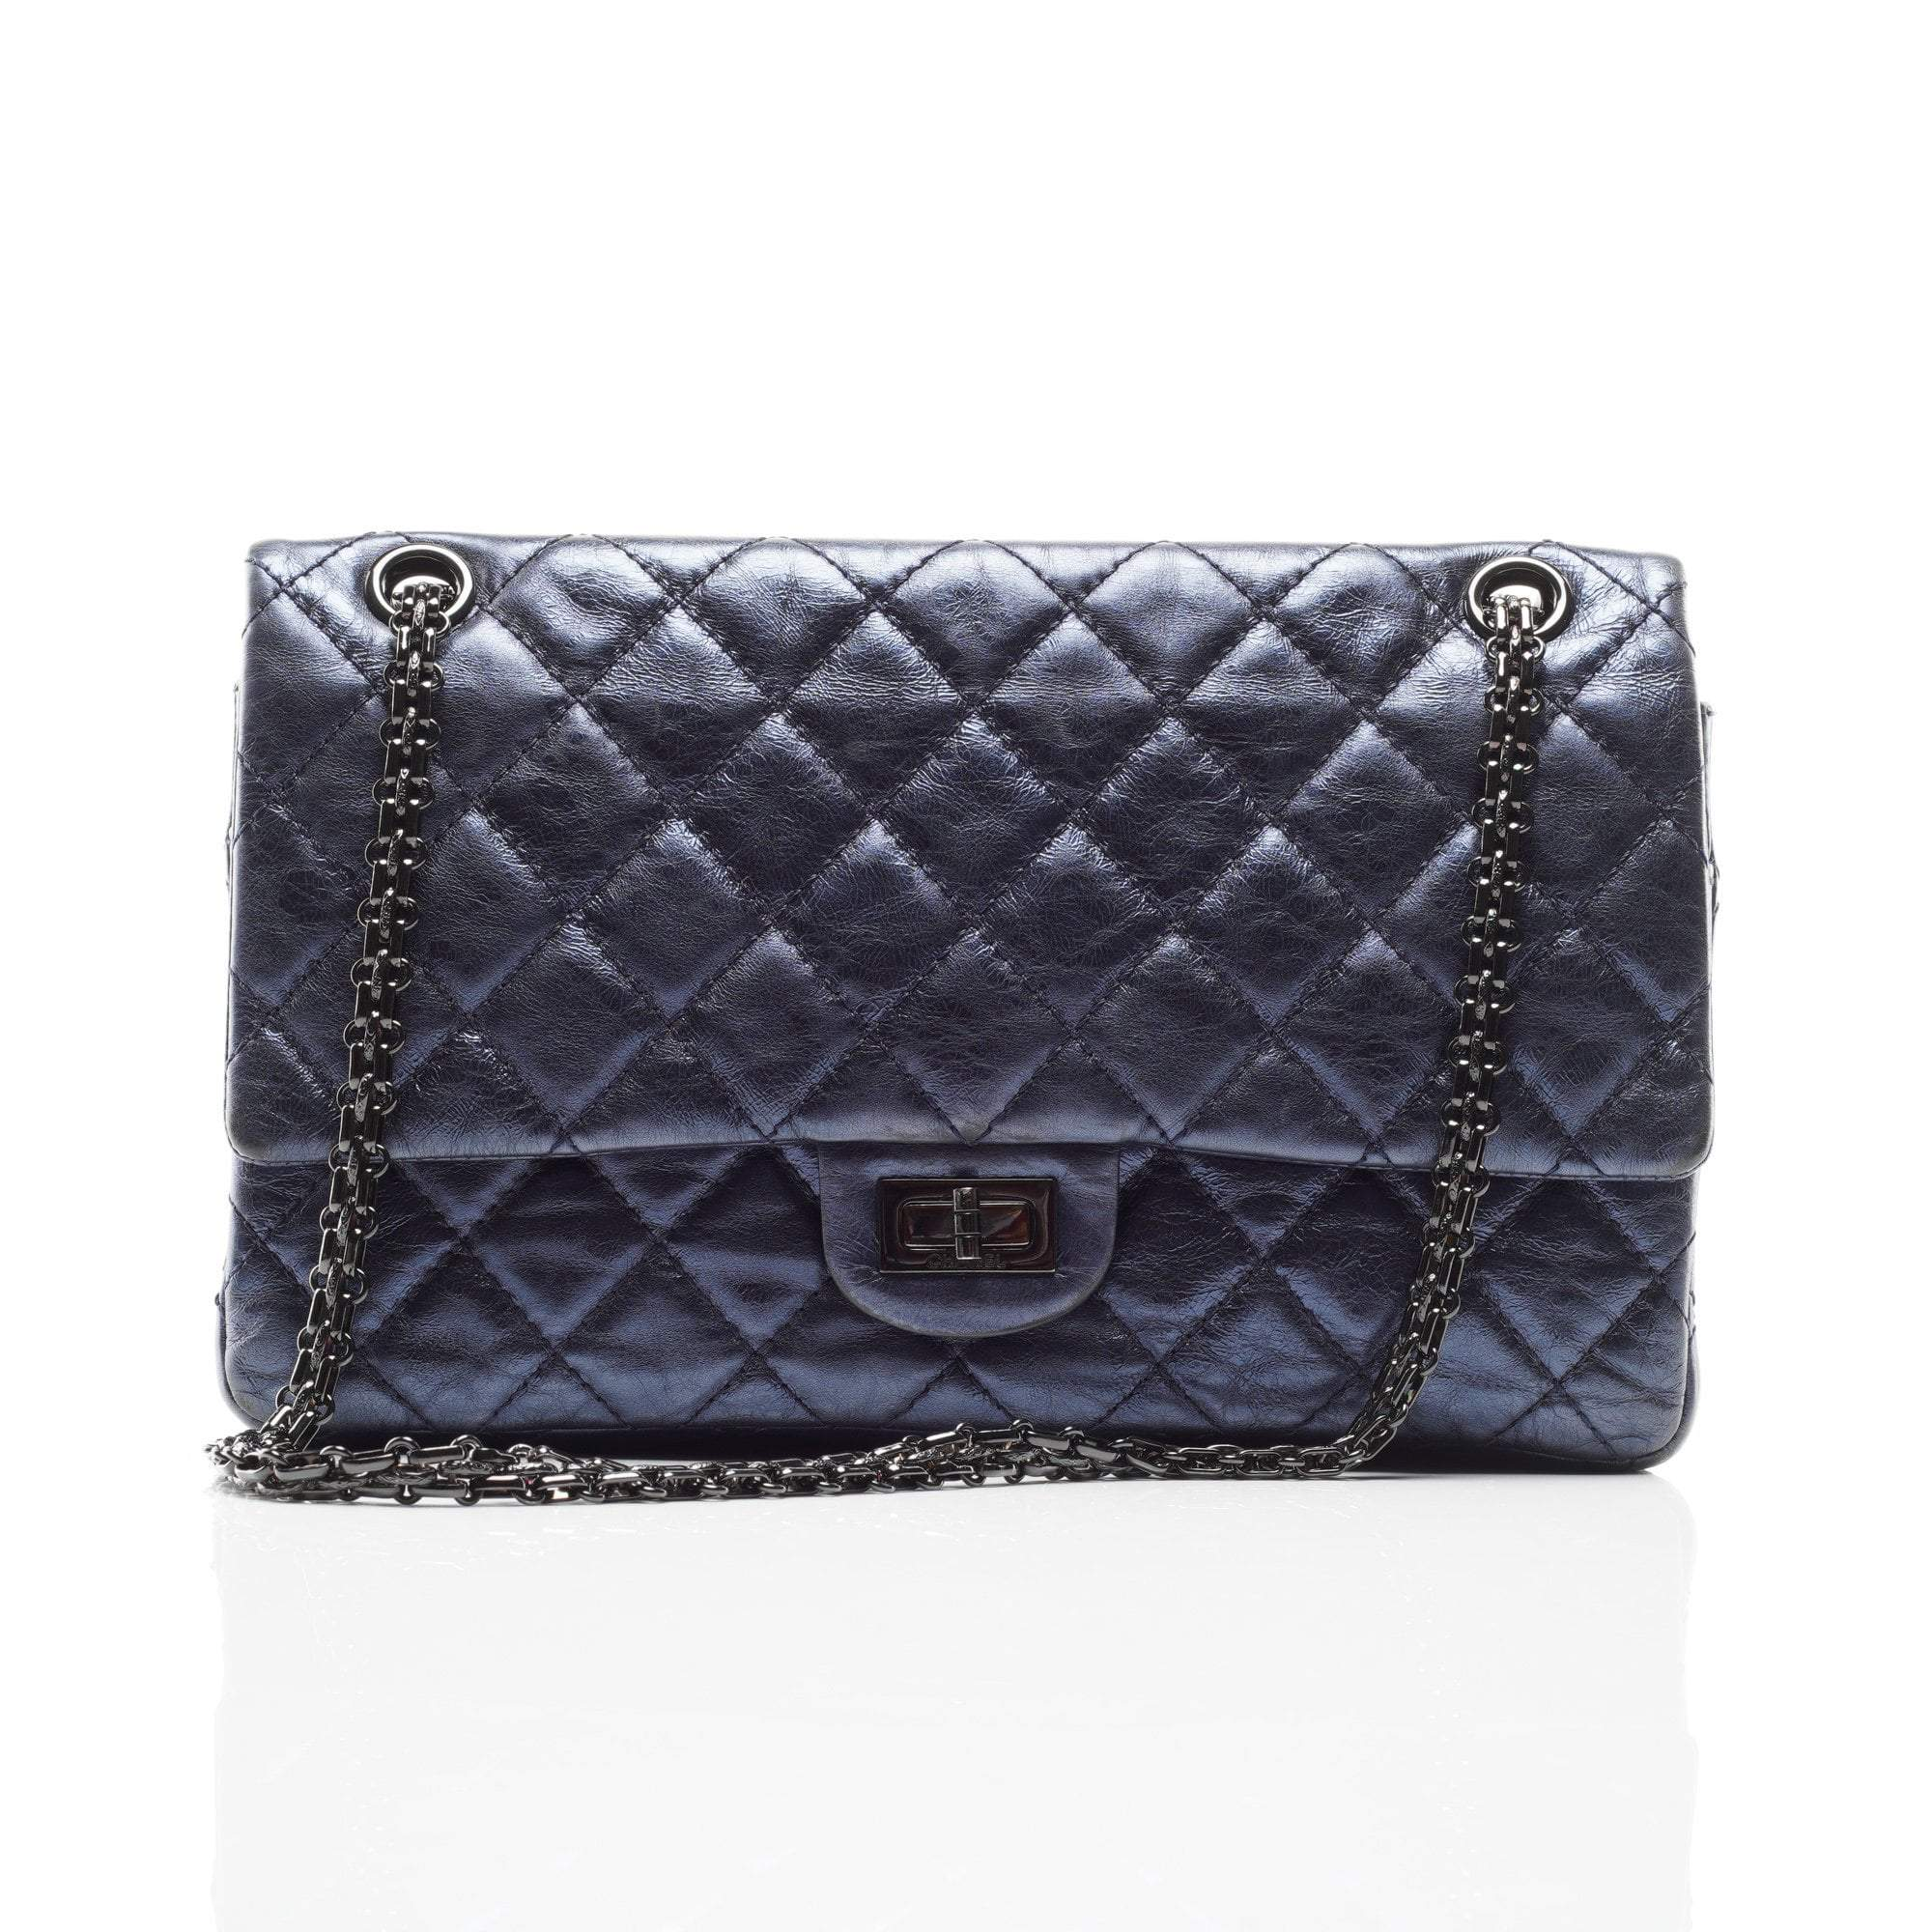 c64724299841 Chanel Blue Leather Medium 2.55 Reissue Double Flap Bag – Garderobe